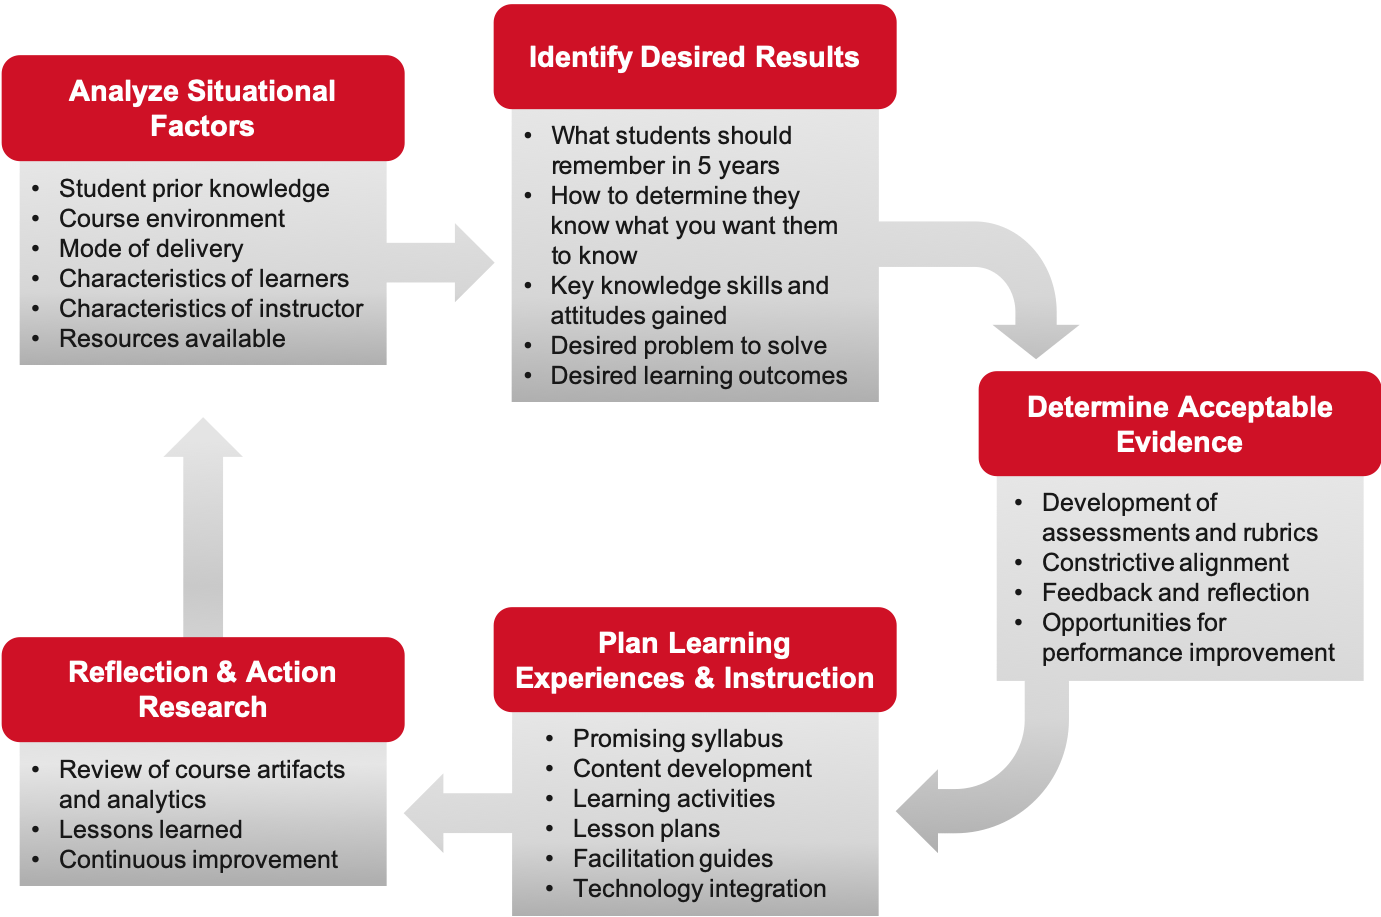 Instructional Design Process - 5 Steps - Identify Situational Factors - Identify Desired Results - Determine Acceptable Evidence - Plan Learning Experiences and Instruction - Reflection and Action Researhc